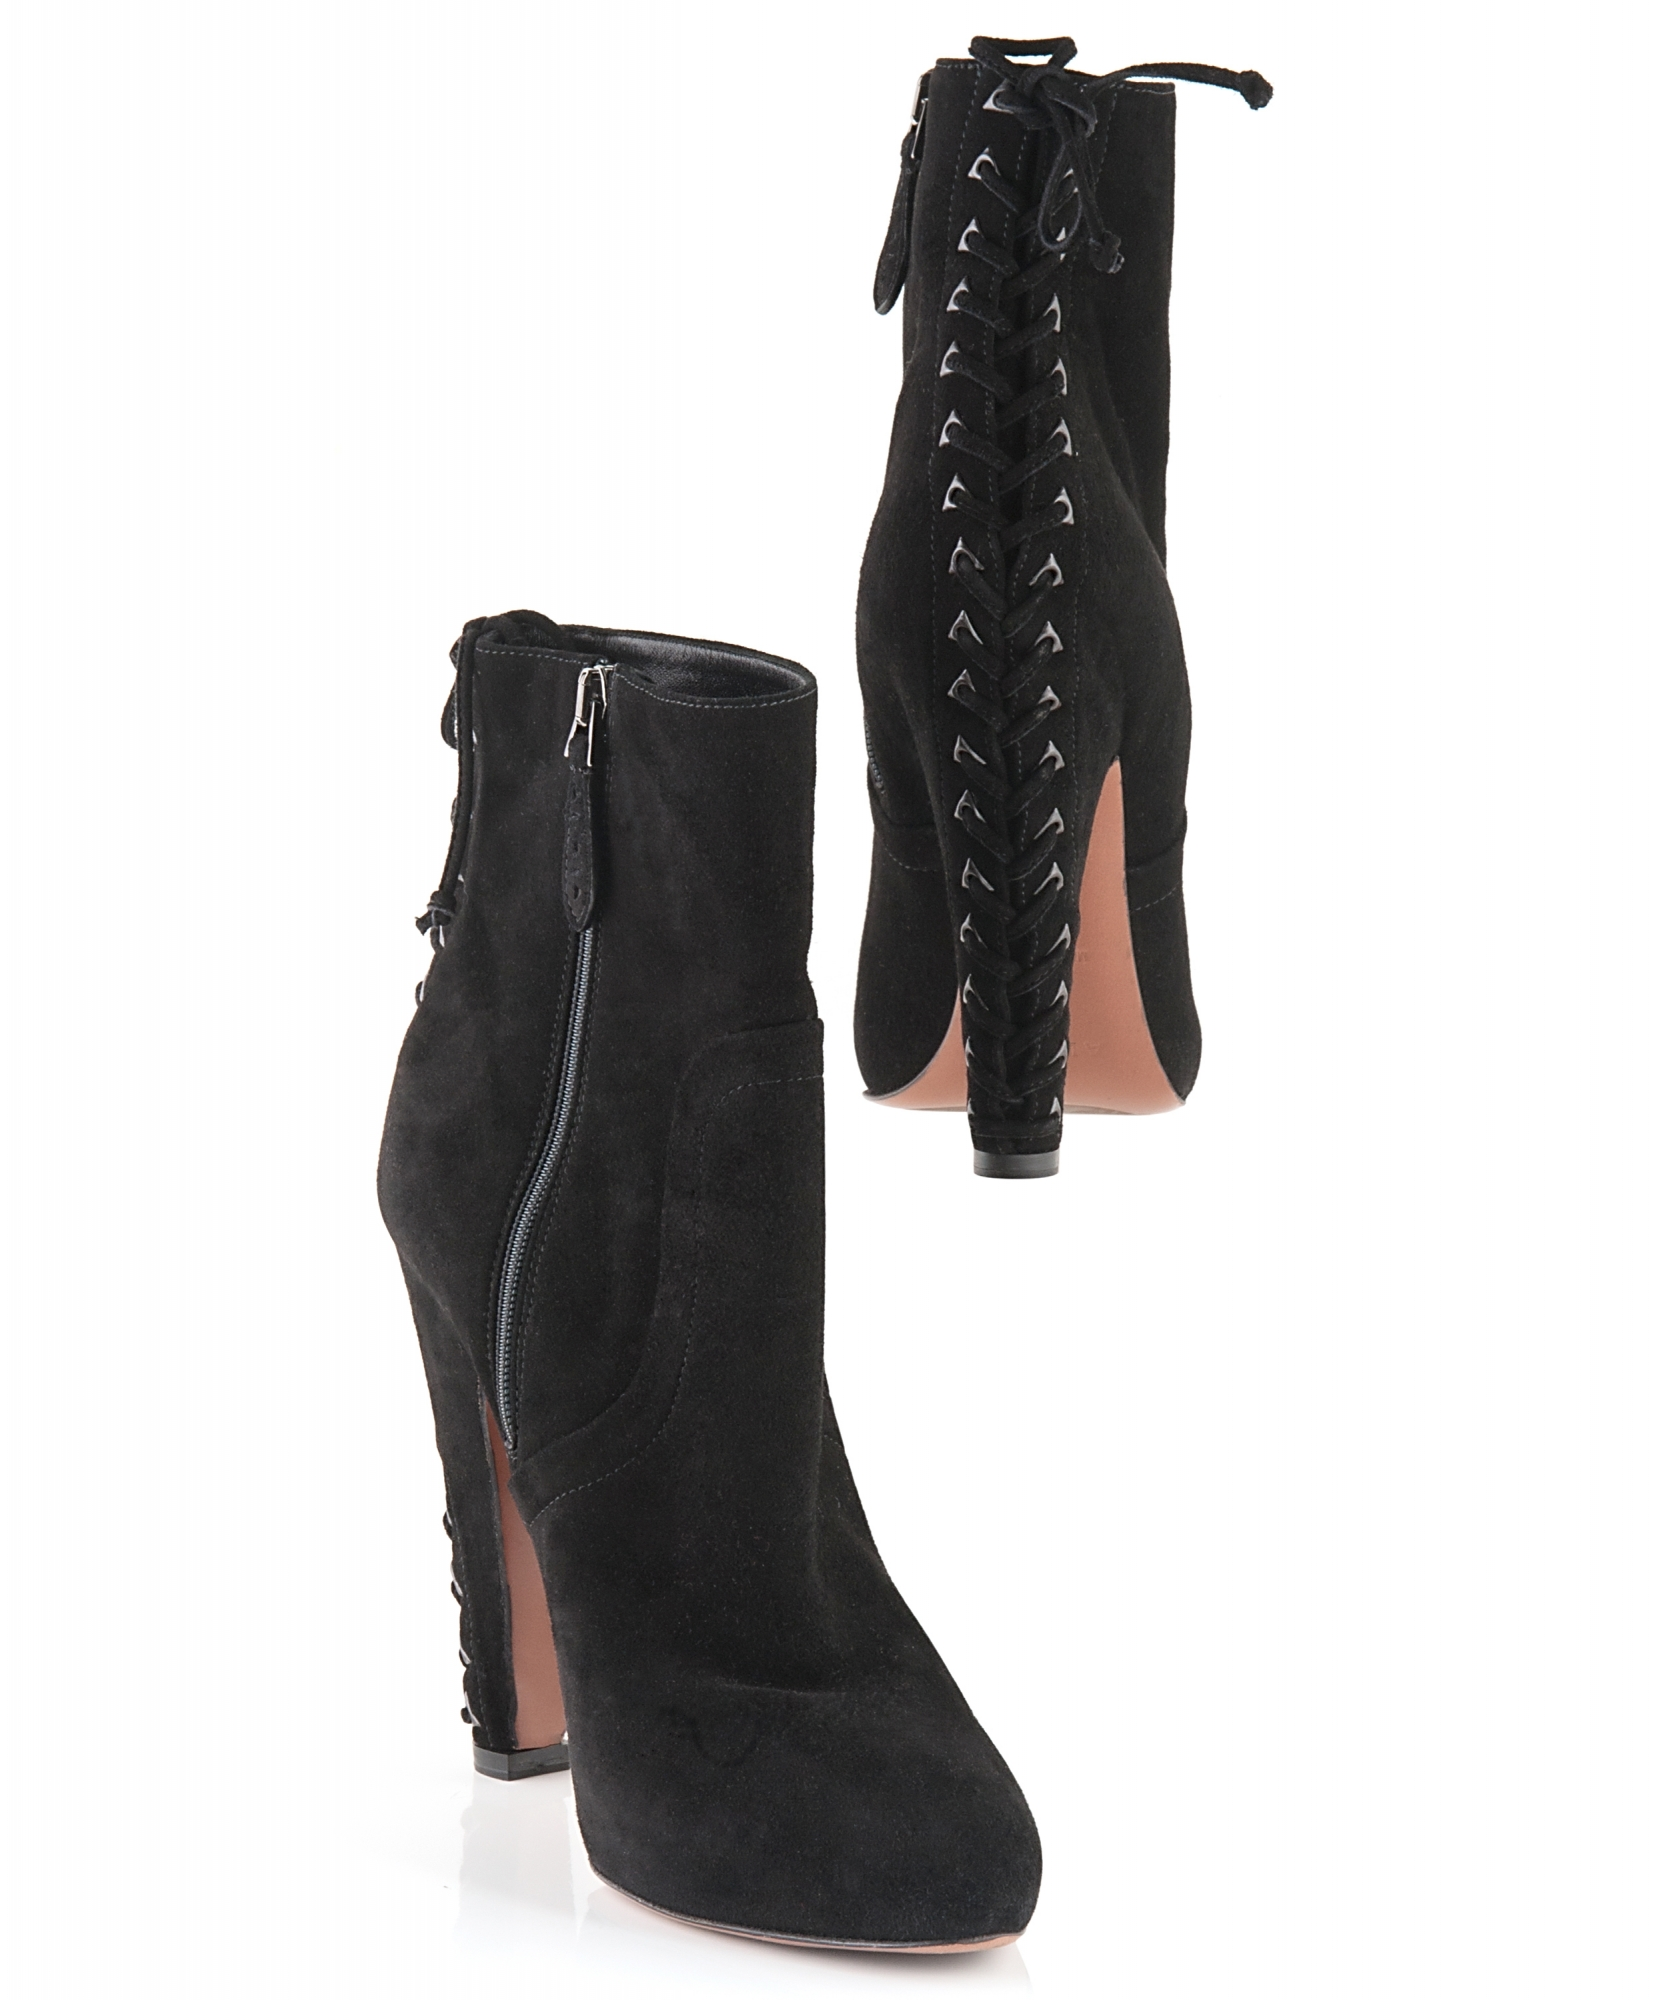 c50c753a415 Alaïa Black Suede Lace-Up Detail Ankle Boots | La Doyenne